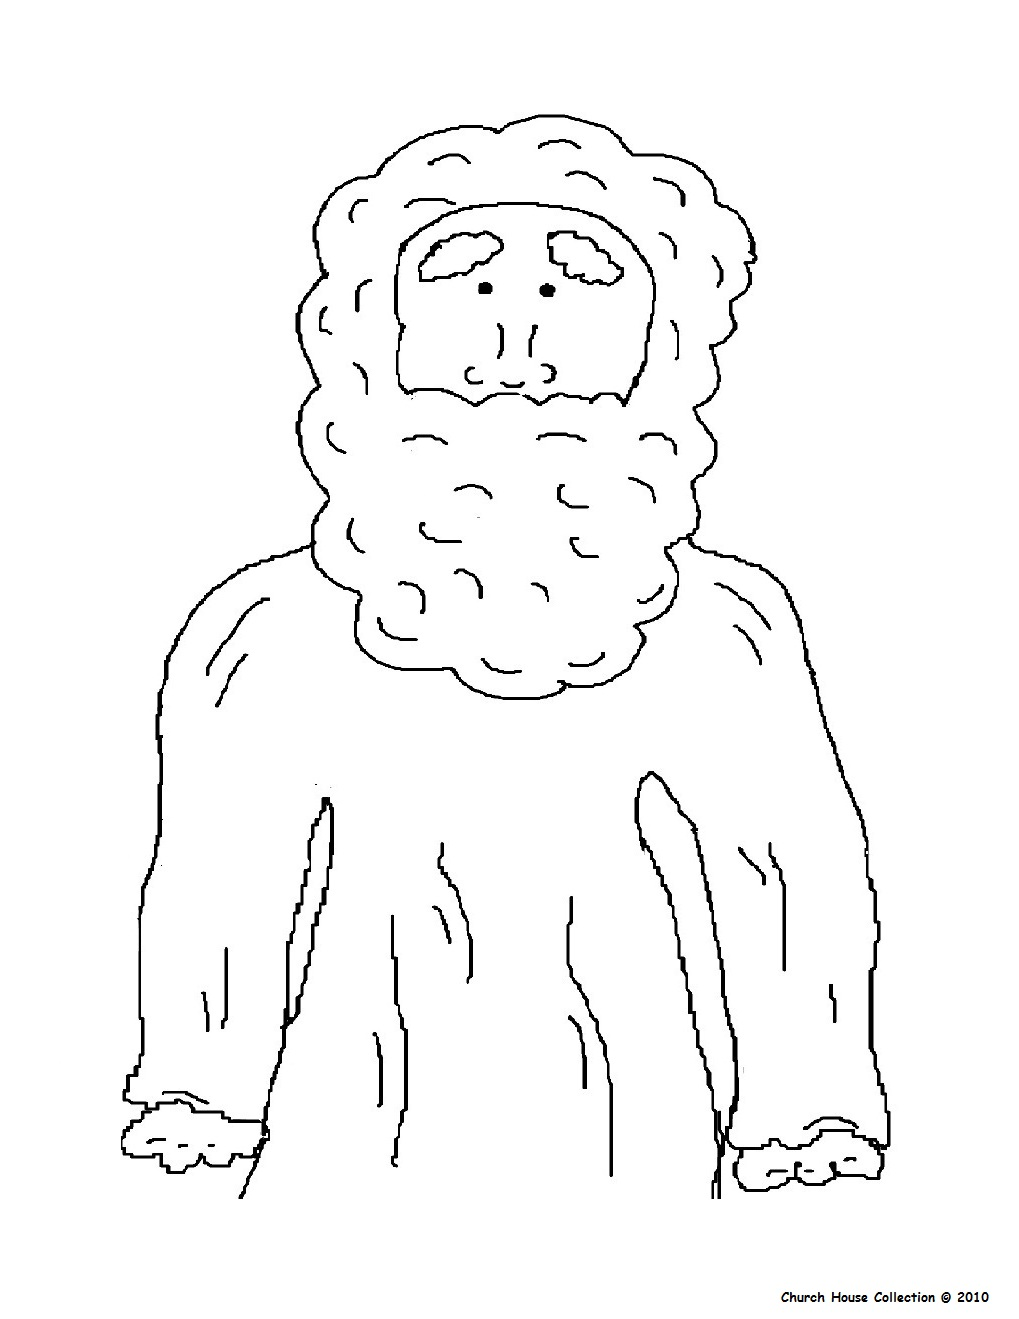 Coloring pages zacchaeus -  Colouring Page Of Abraham No Words At Http Www Churchhousecollection Com Resources Abraham 20no 20name 20coloring 20page Jpg